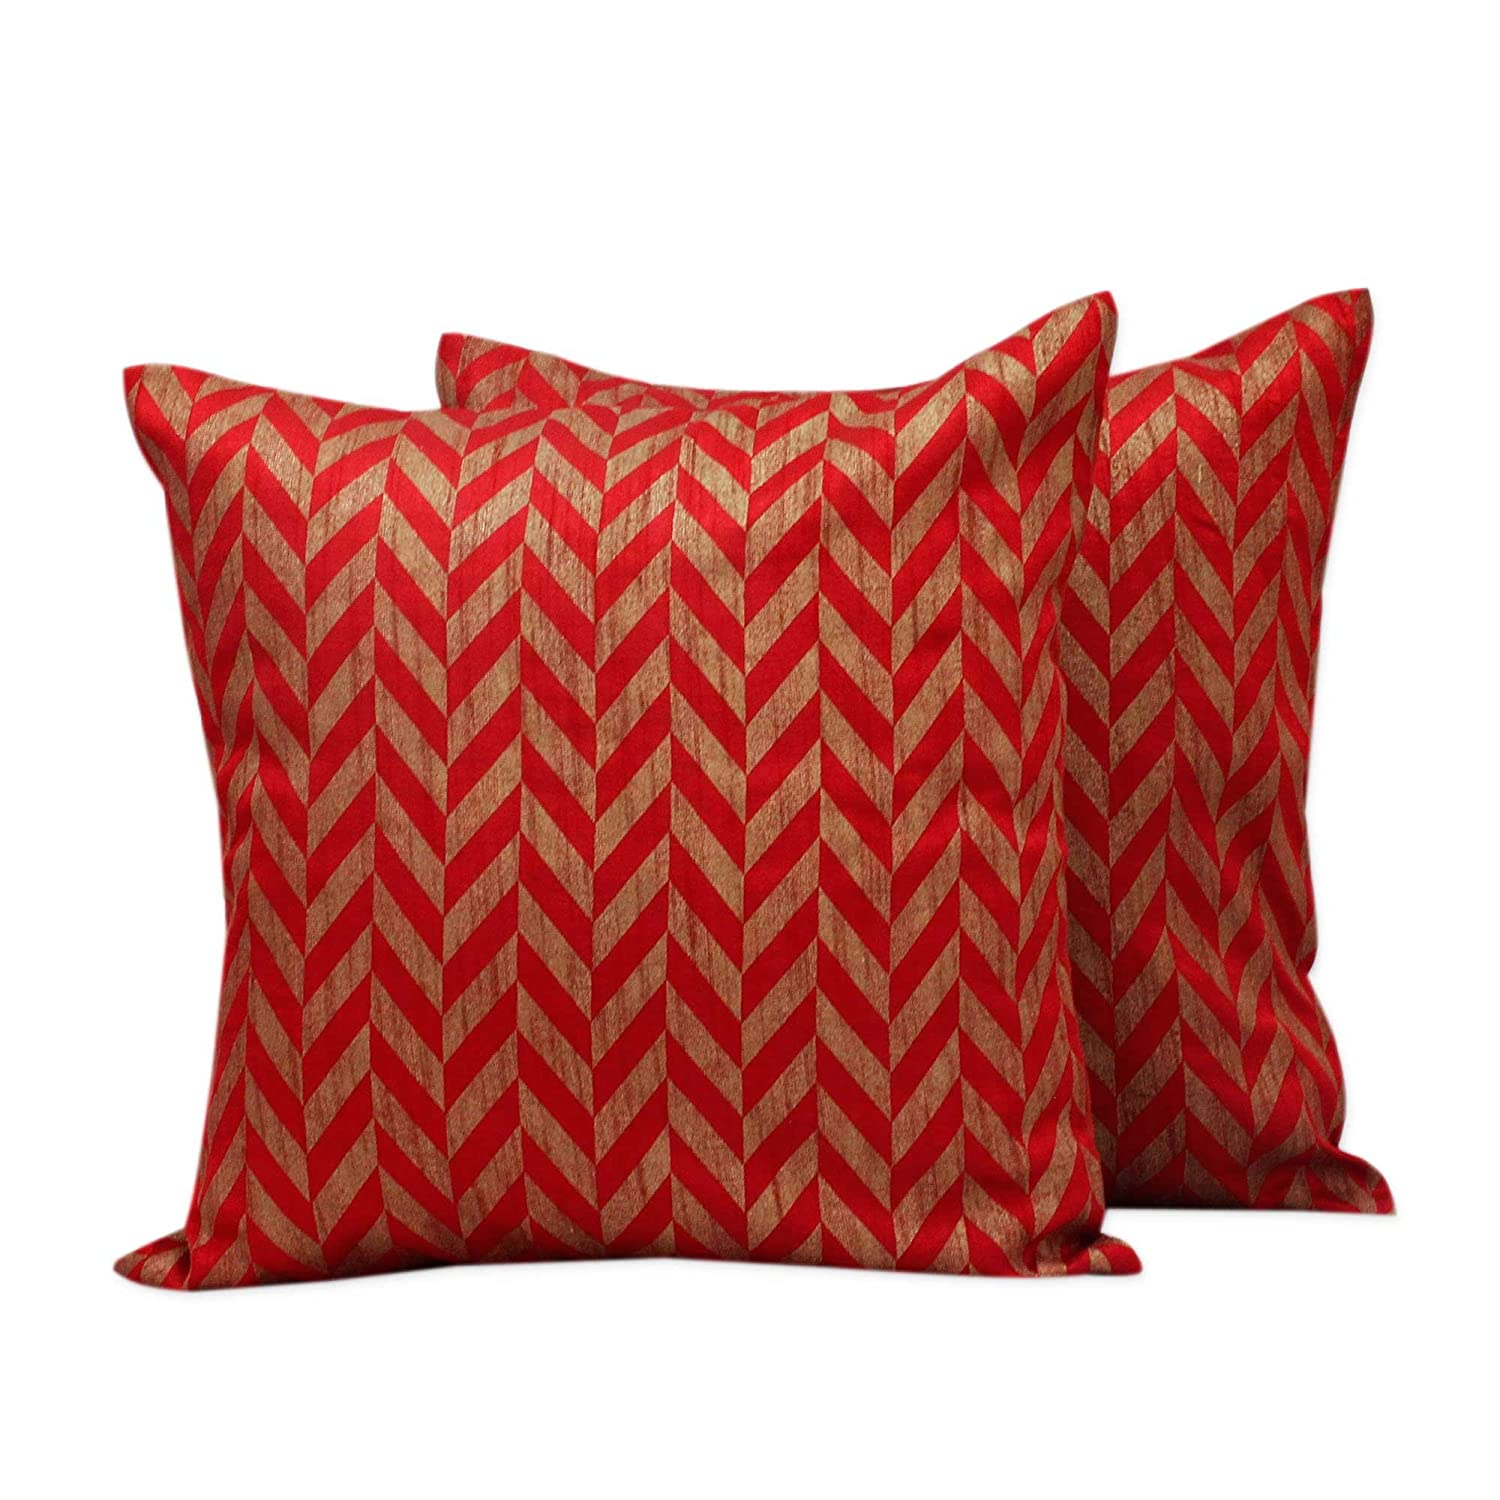 NOVICA Green and Beige Recycled Natural Duality Jute and Cotton Cushion Cover